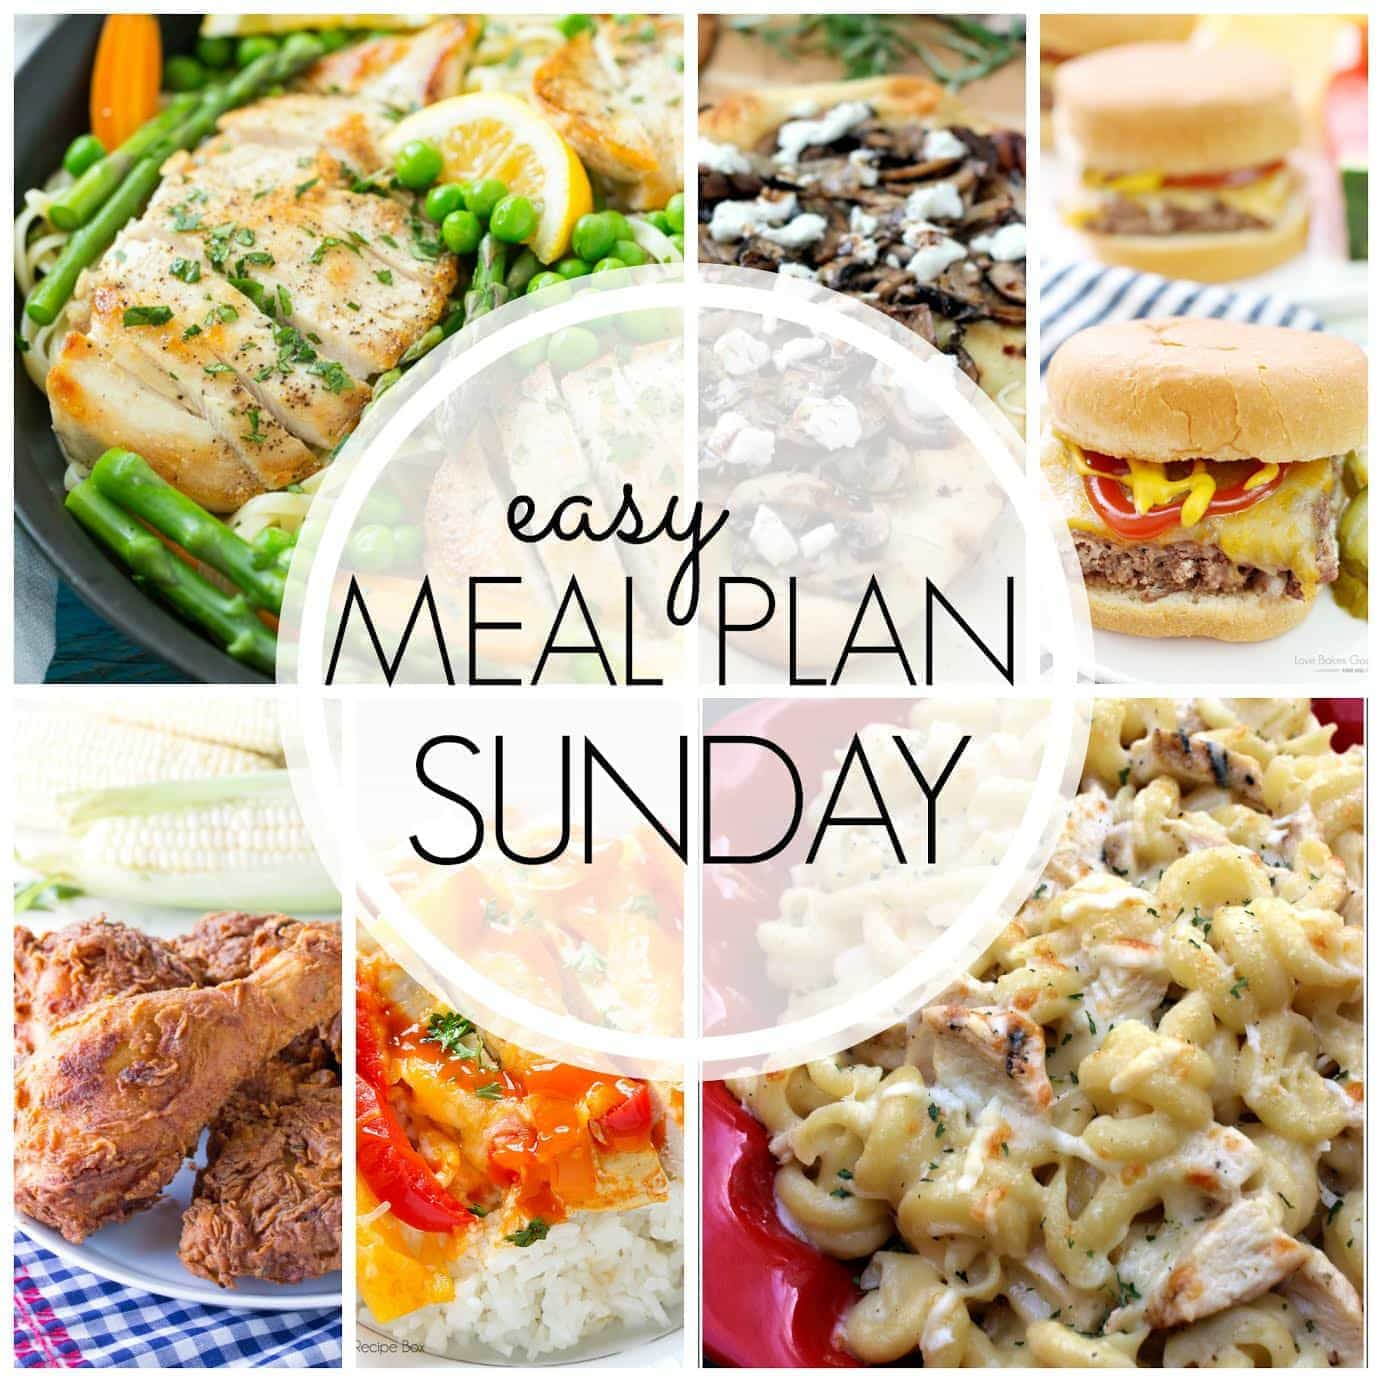 The BEST Easy Meal Plan! This meal plan has everything you need for a stress-free, delicious week (dessert included)!